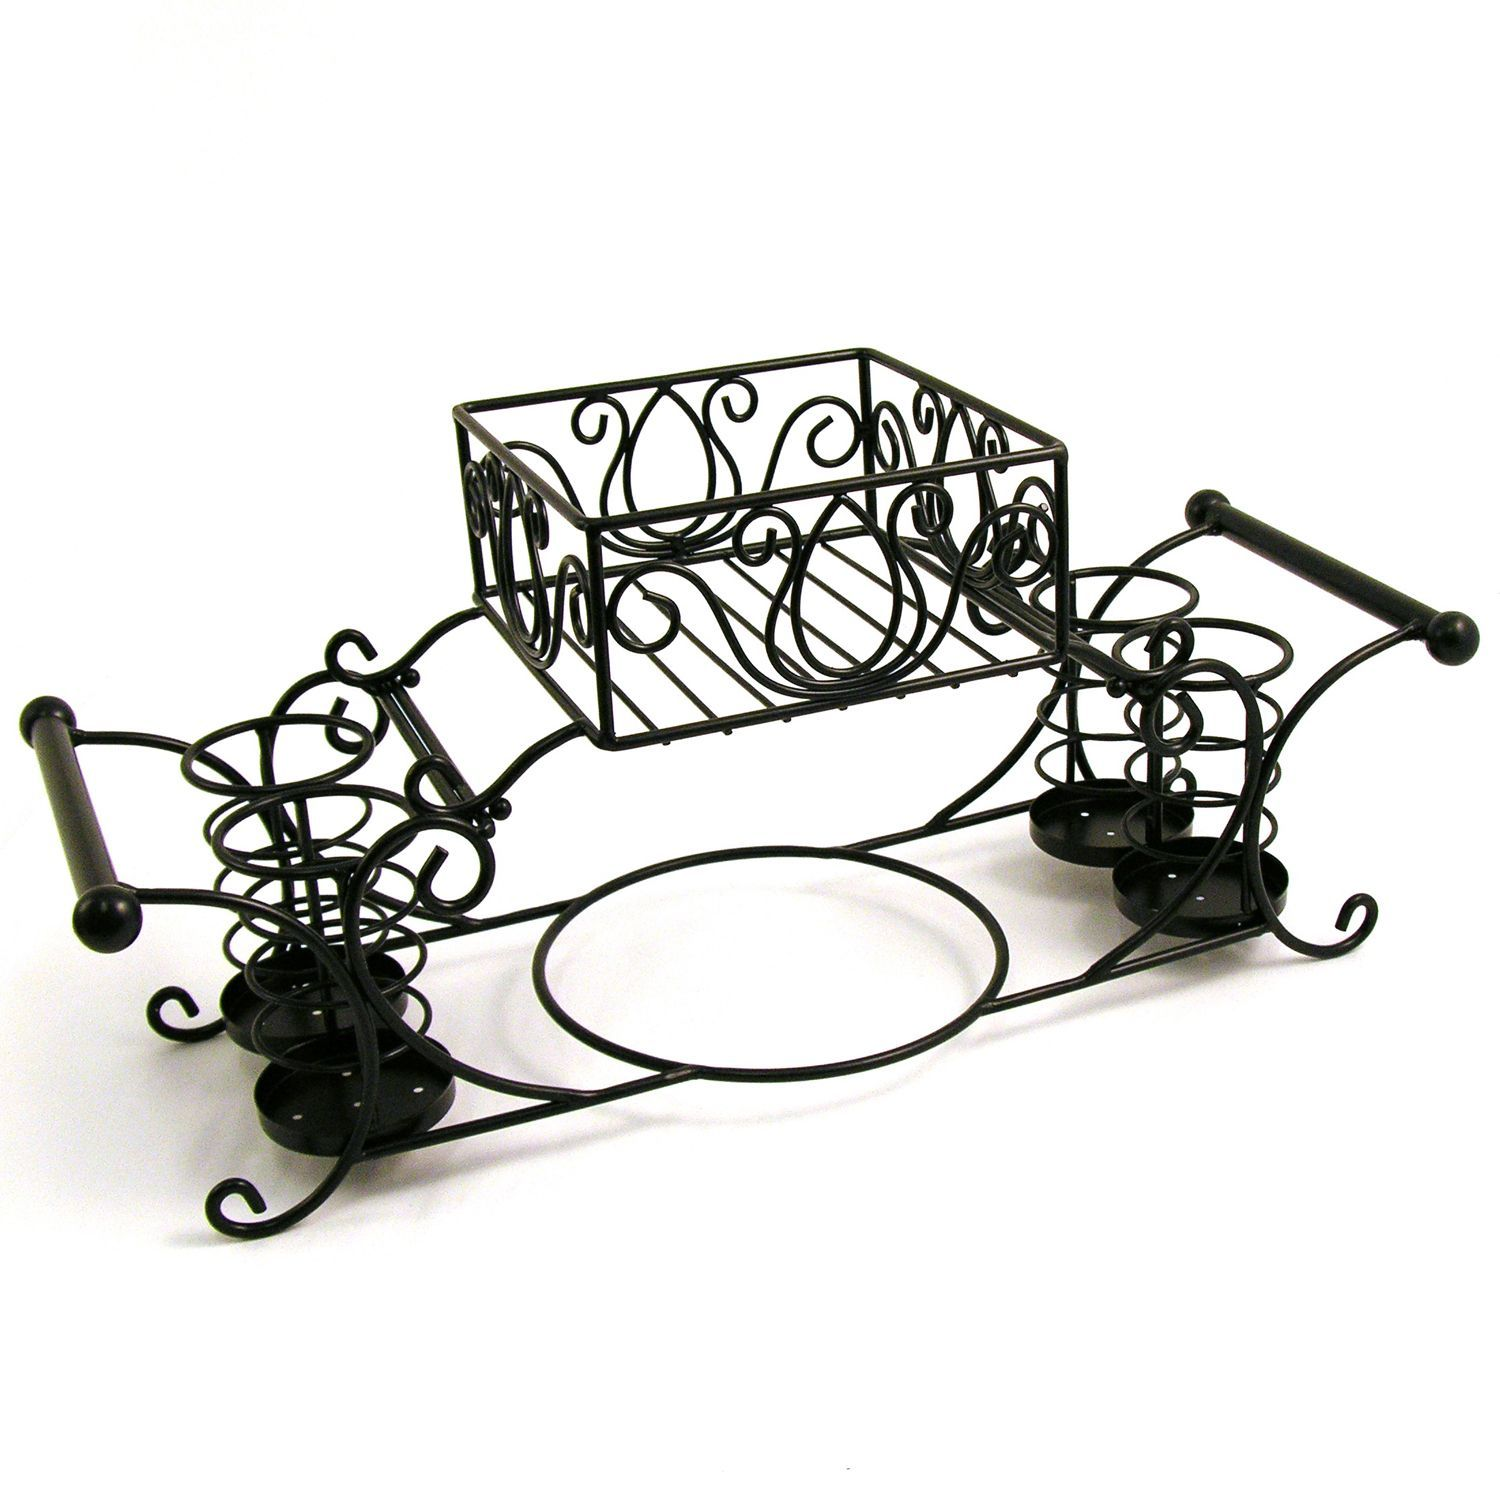 Buffet Caddy - Sam's Club - Buffet Caddy - Sam's Club What Makes A House A Home? Pinterest